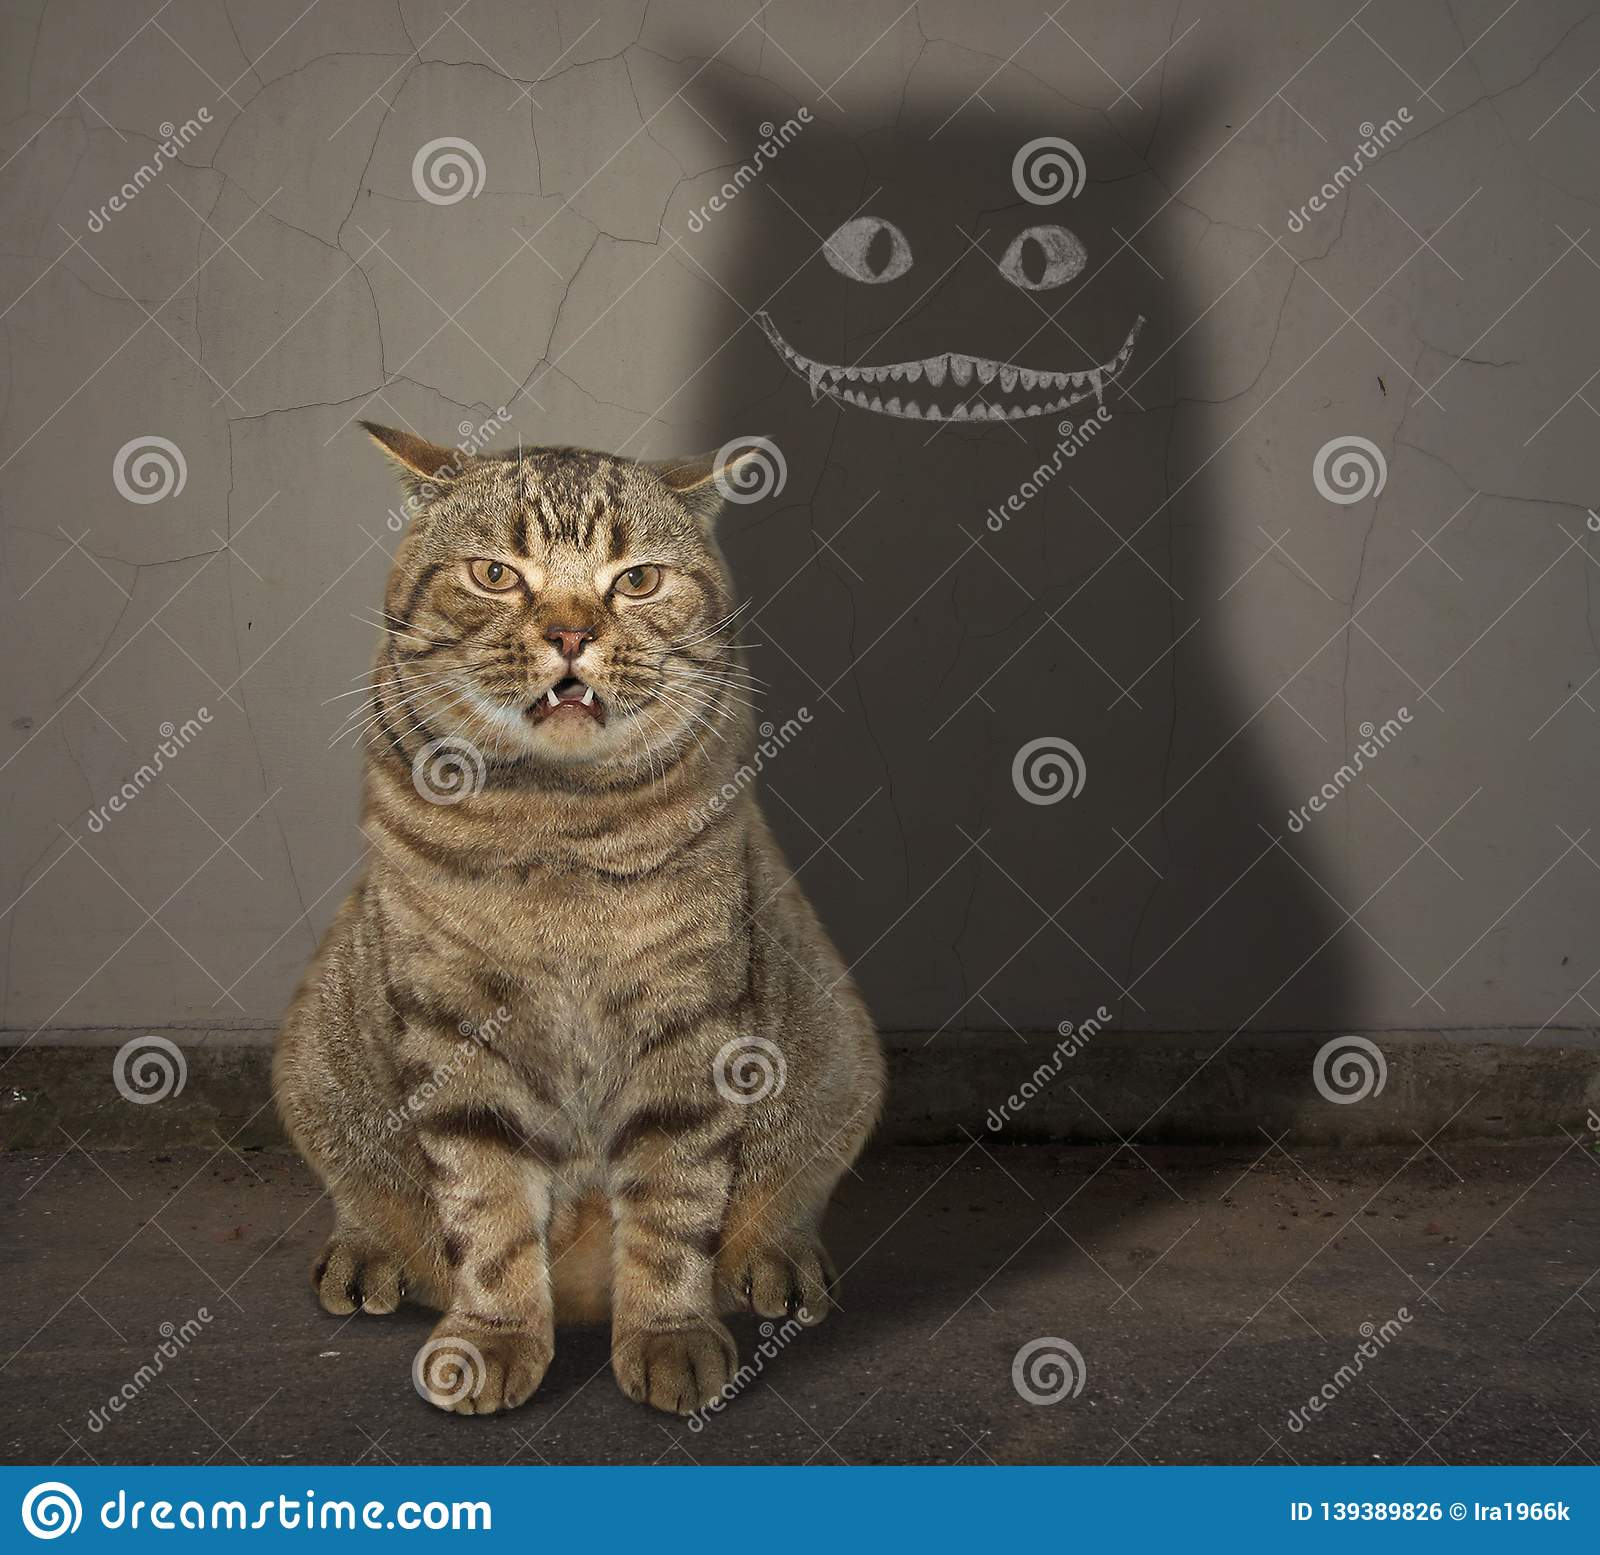 Cat and its shadow on the wall